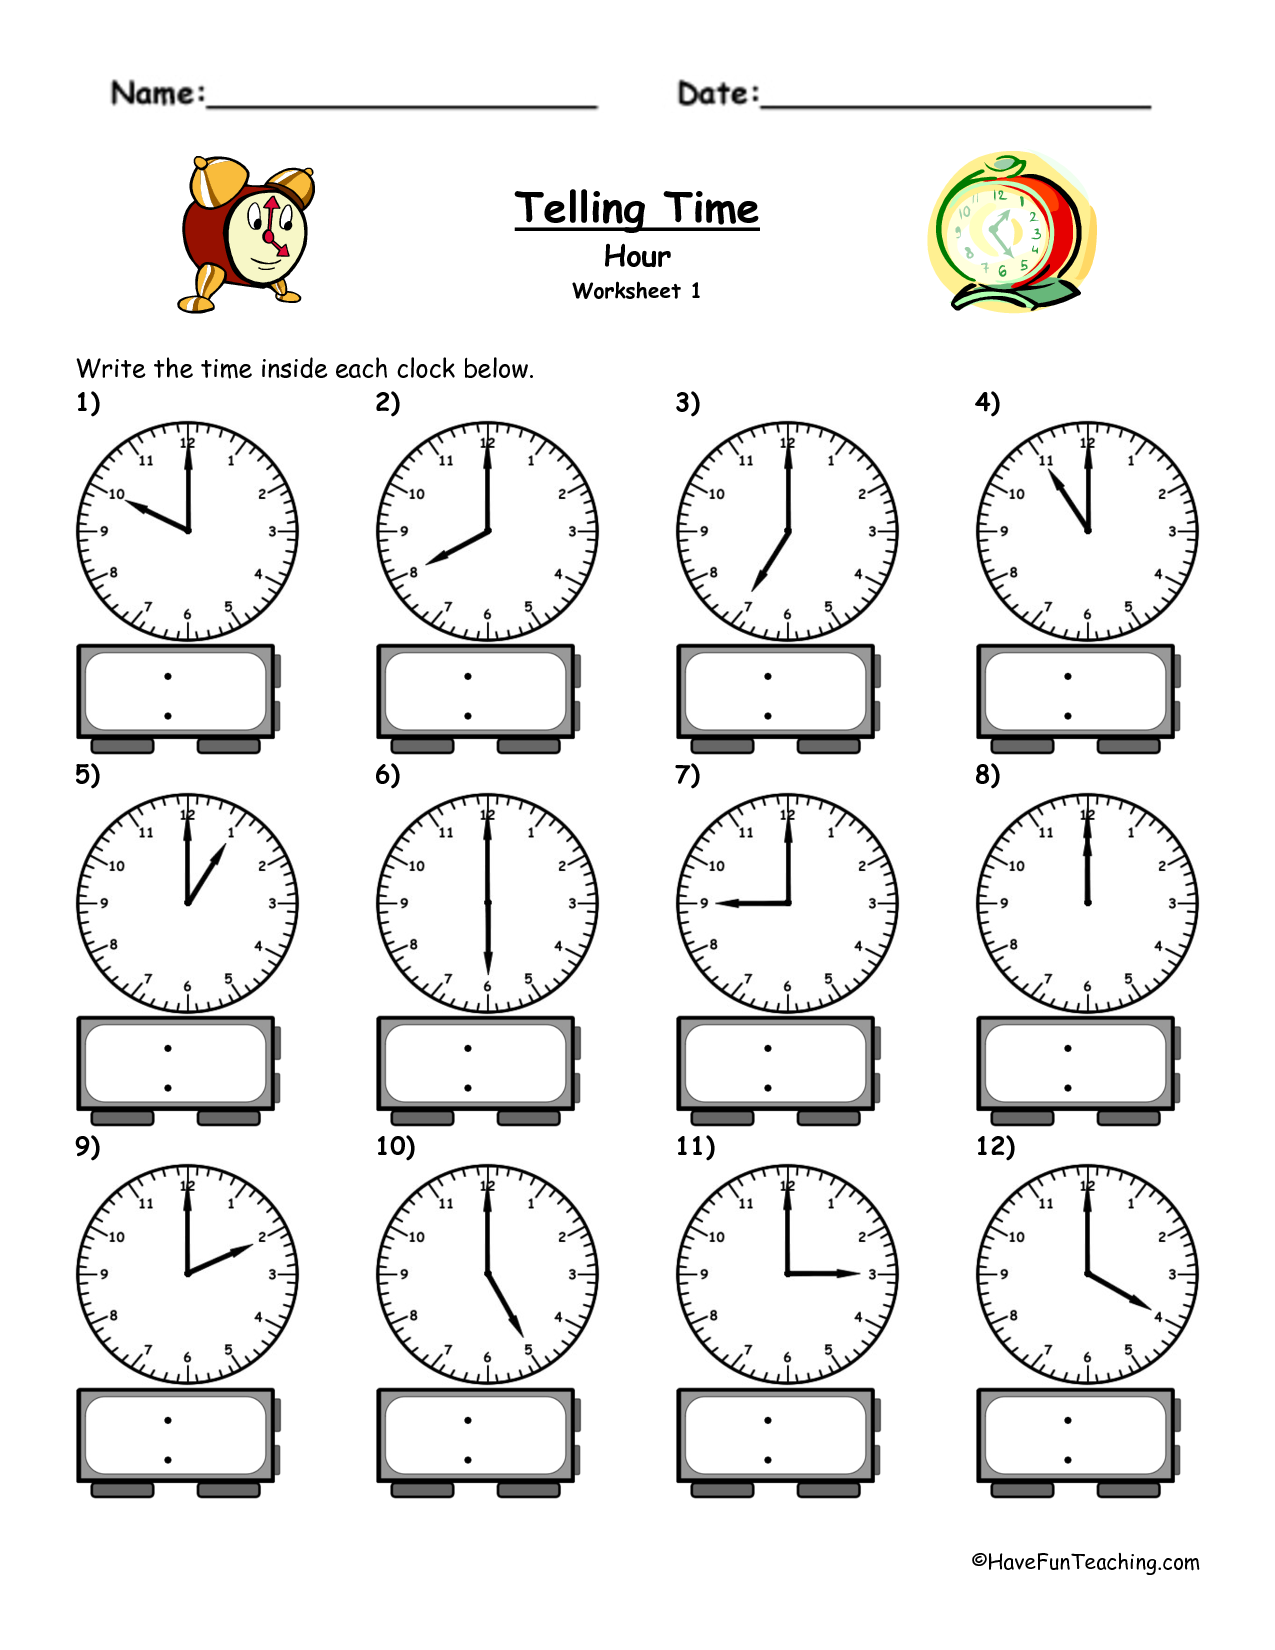 time worksheets telling time worksheets favorite recipes kids math worksheets math math. Black Bedroom Furniture Sets. Home Design Ideas